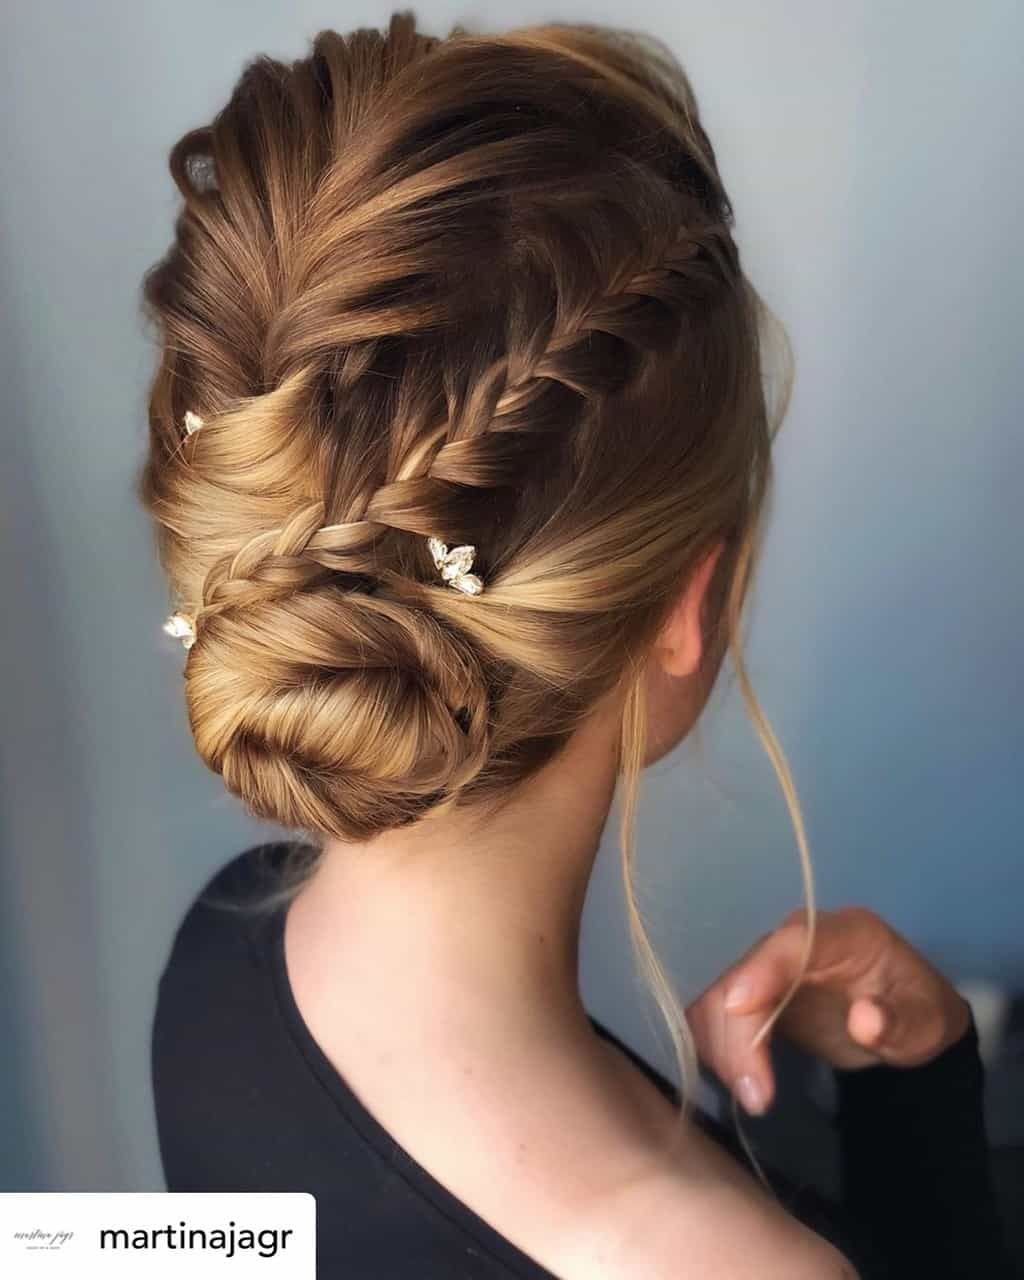 15 Incredibly Cute New Year S Eve Hairstyles 2020 Tutorials Included In 2020 Braided Hairstyles Prom Hair Updo Hair Styles